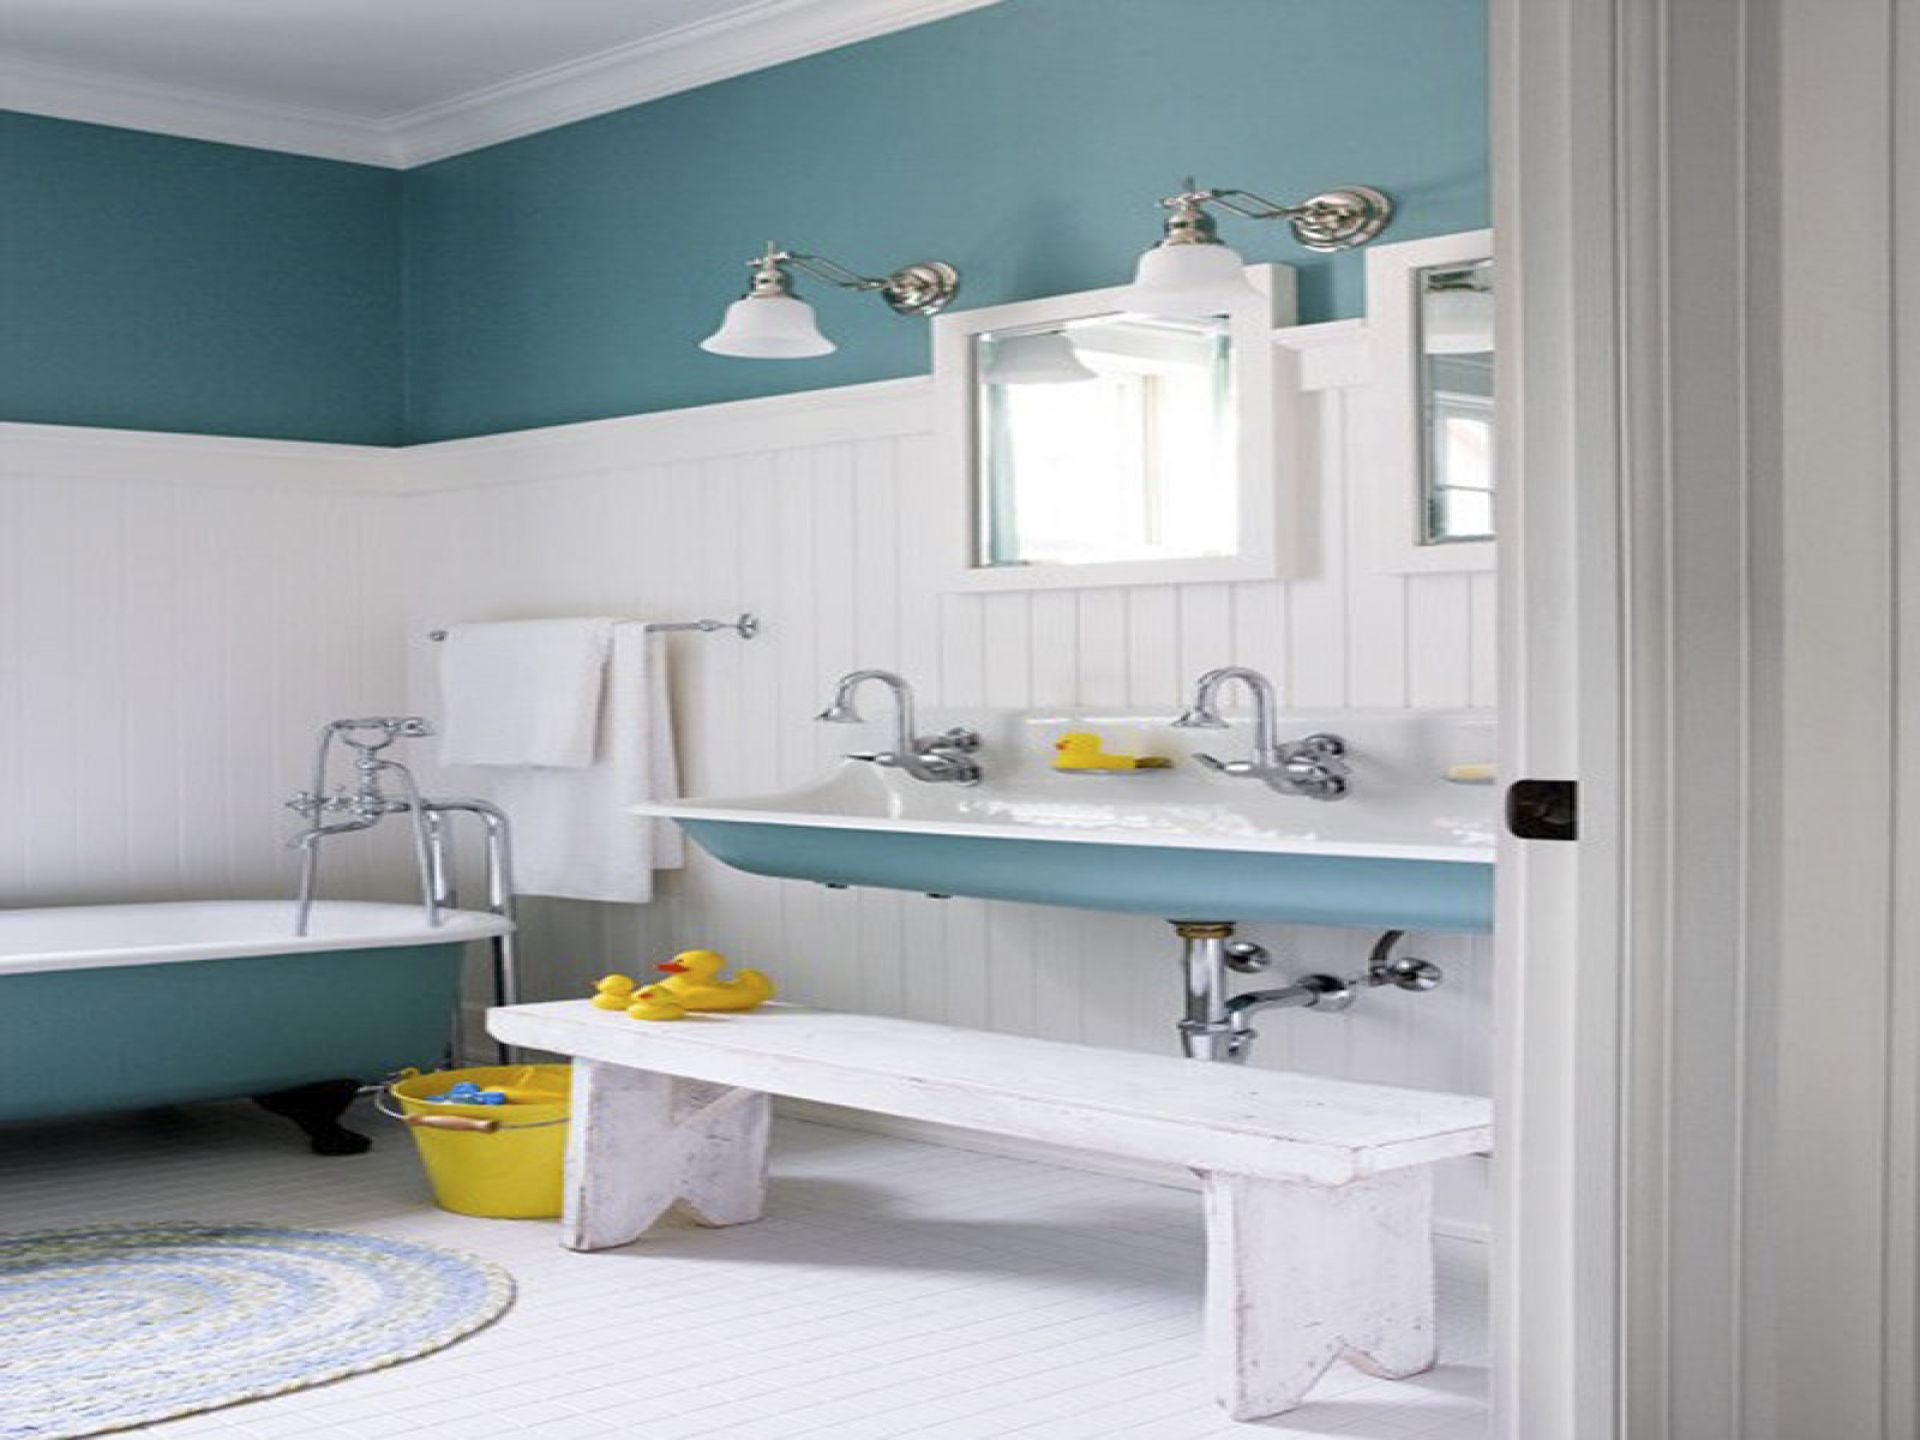 Charmant Interesting Wall Paneling Painted In White Combined With Blue And White  Furnishing For Kids Bathroom